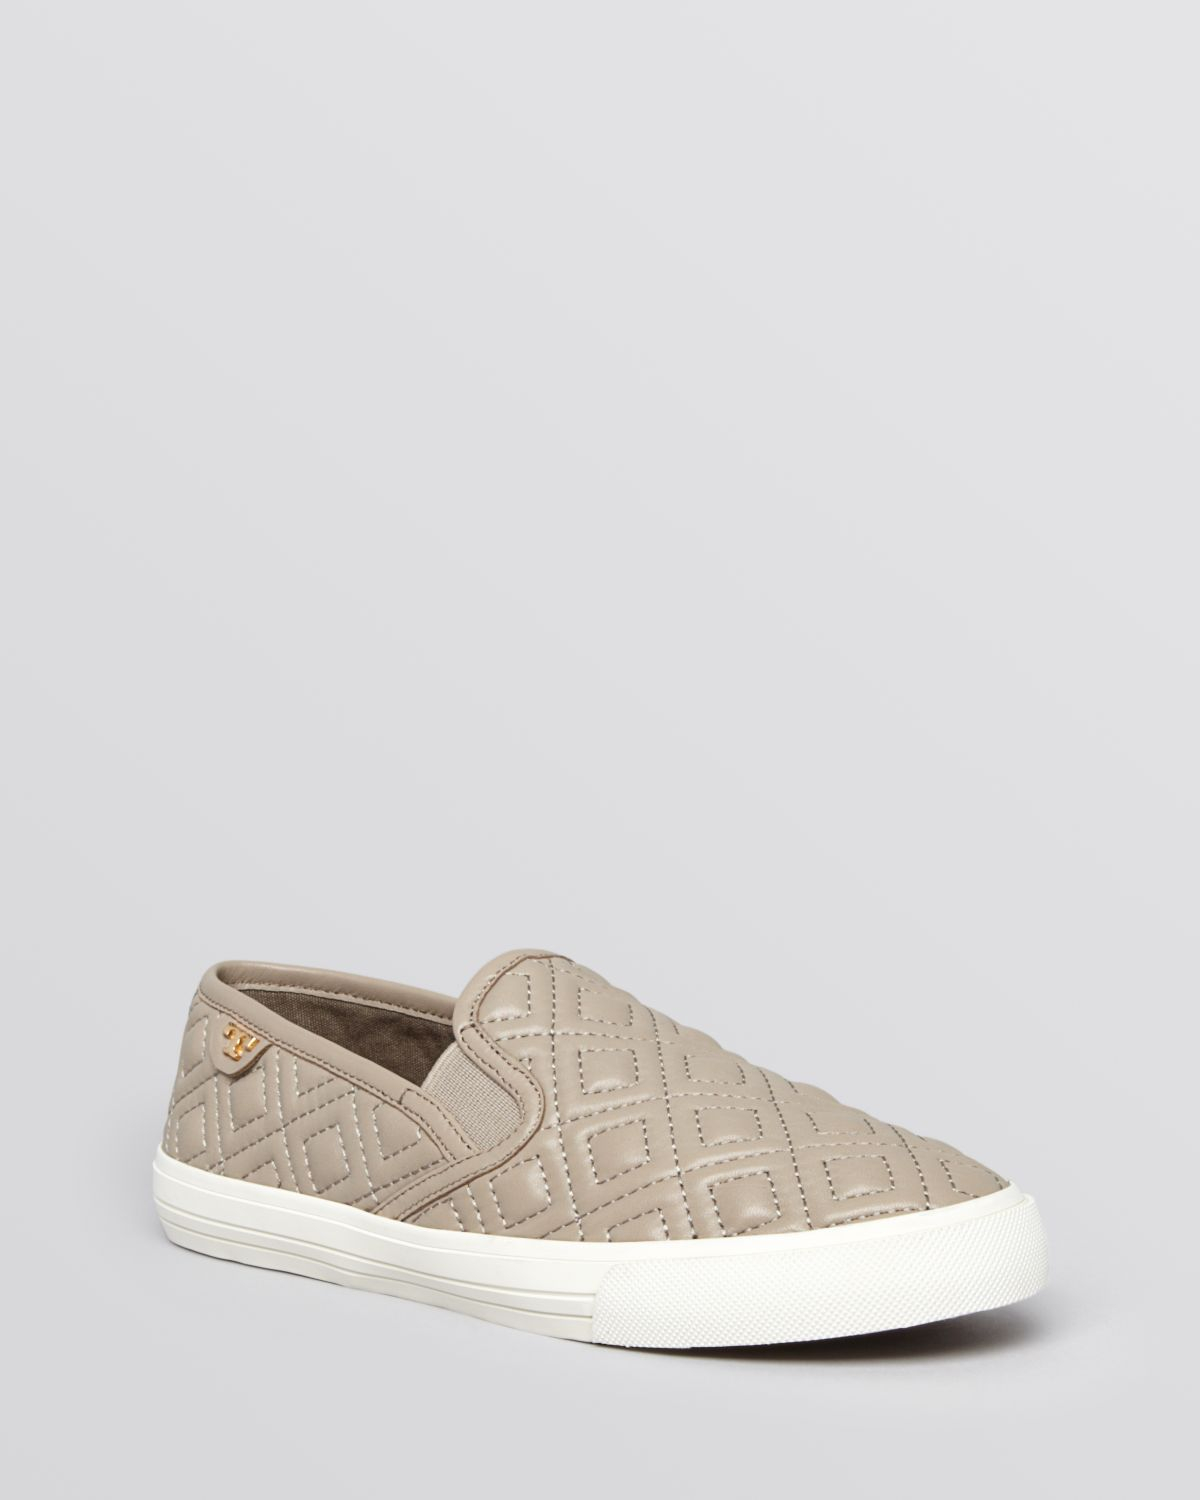 Tory Burch Flat Slip On Sneakers Jesse Quilted In Gray